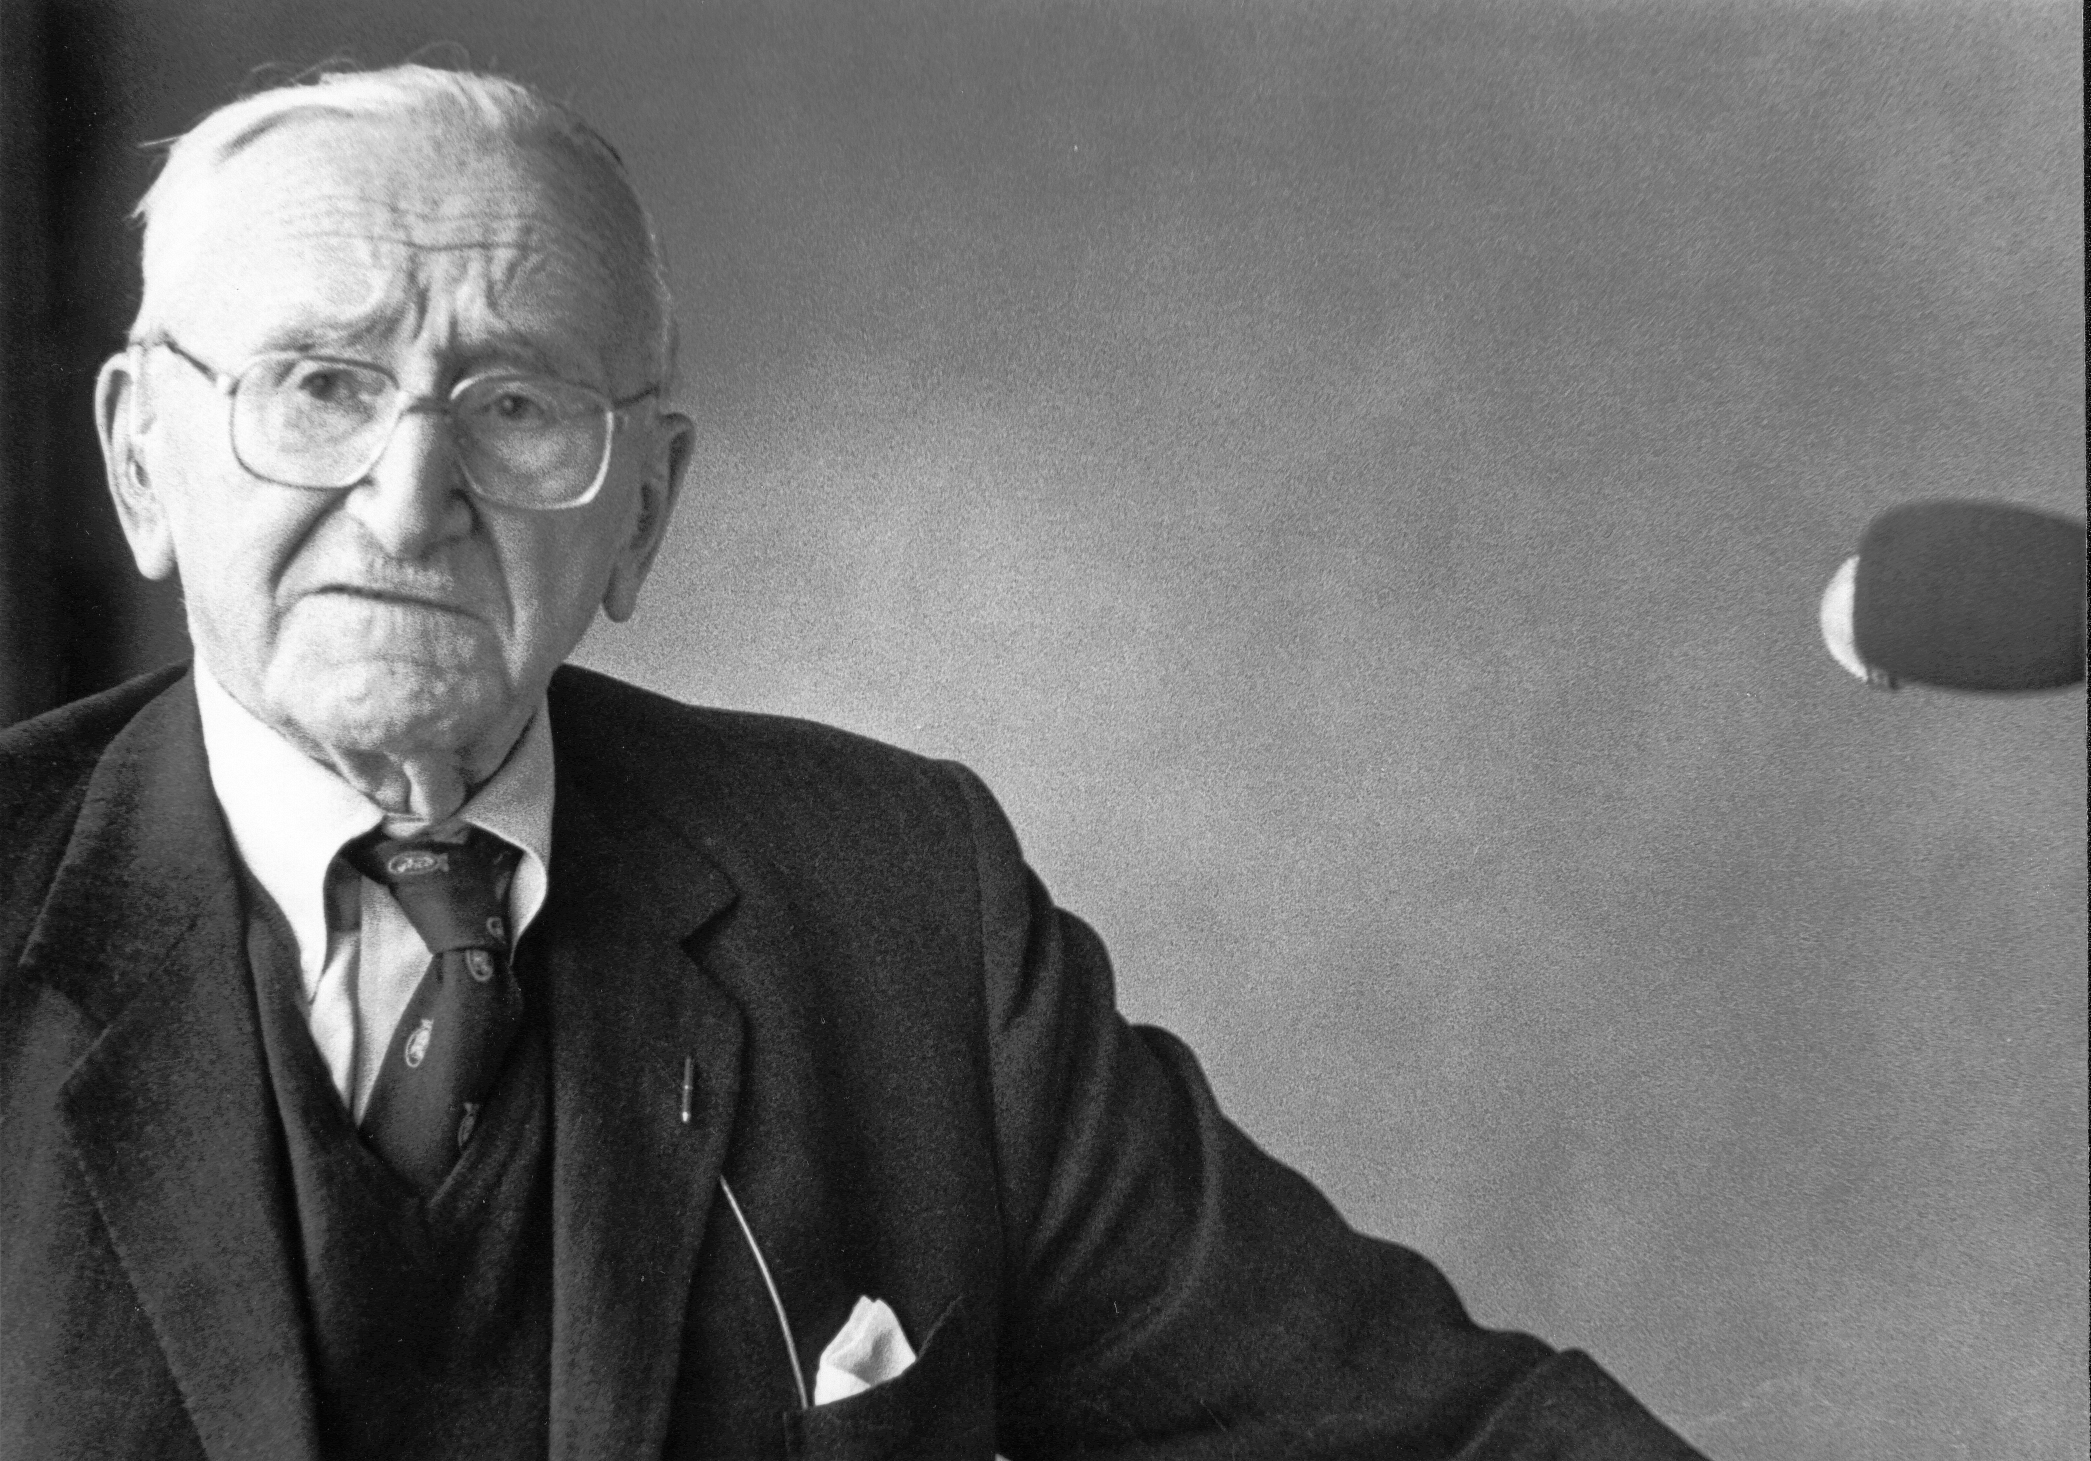 We must make the building of a free society once more an intellectual adventure, a deed of courage. - Friedrich August von Hayek, Nobel Prize in Economics (1974)